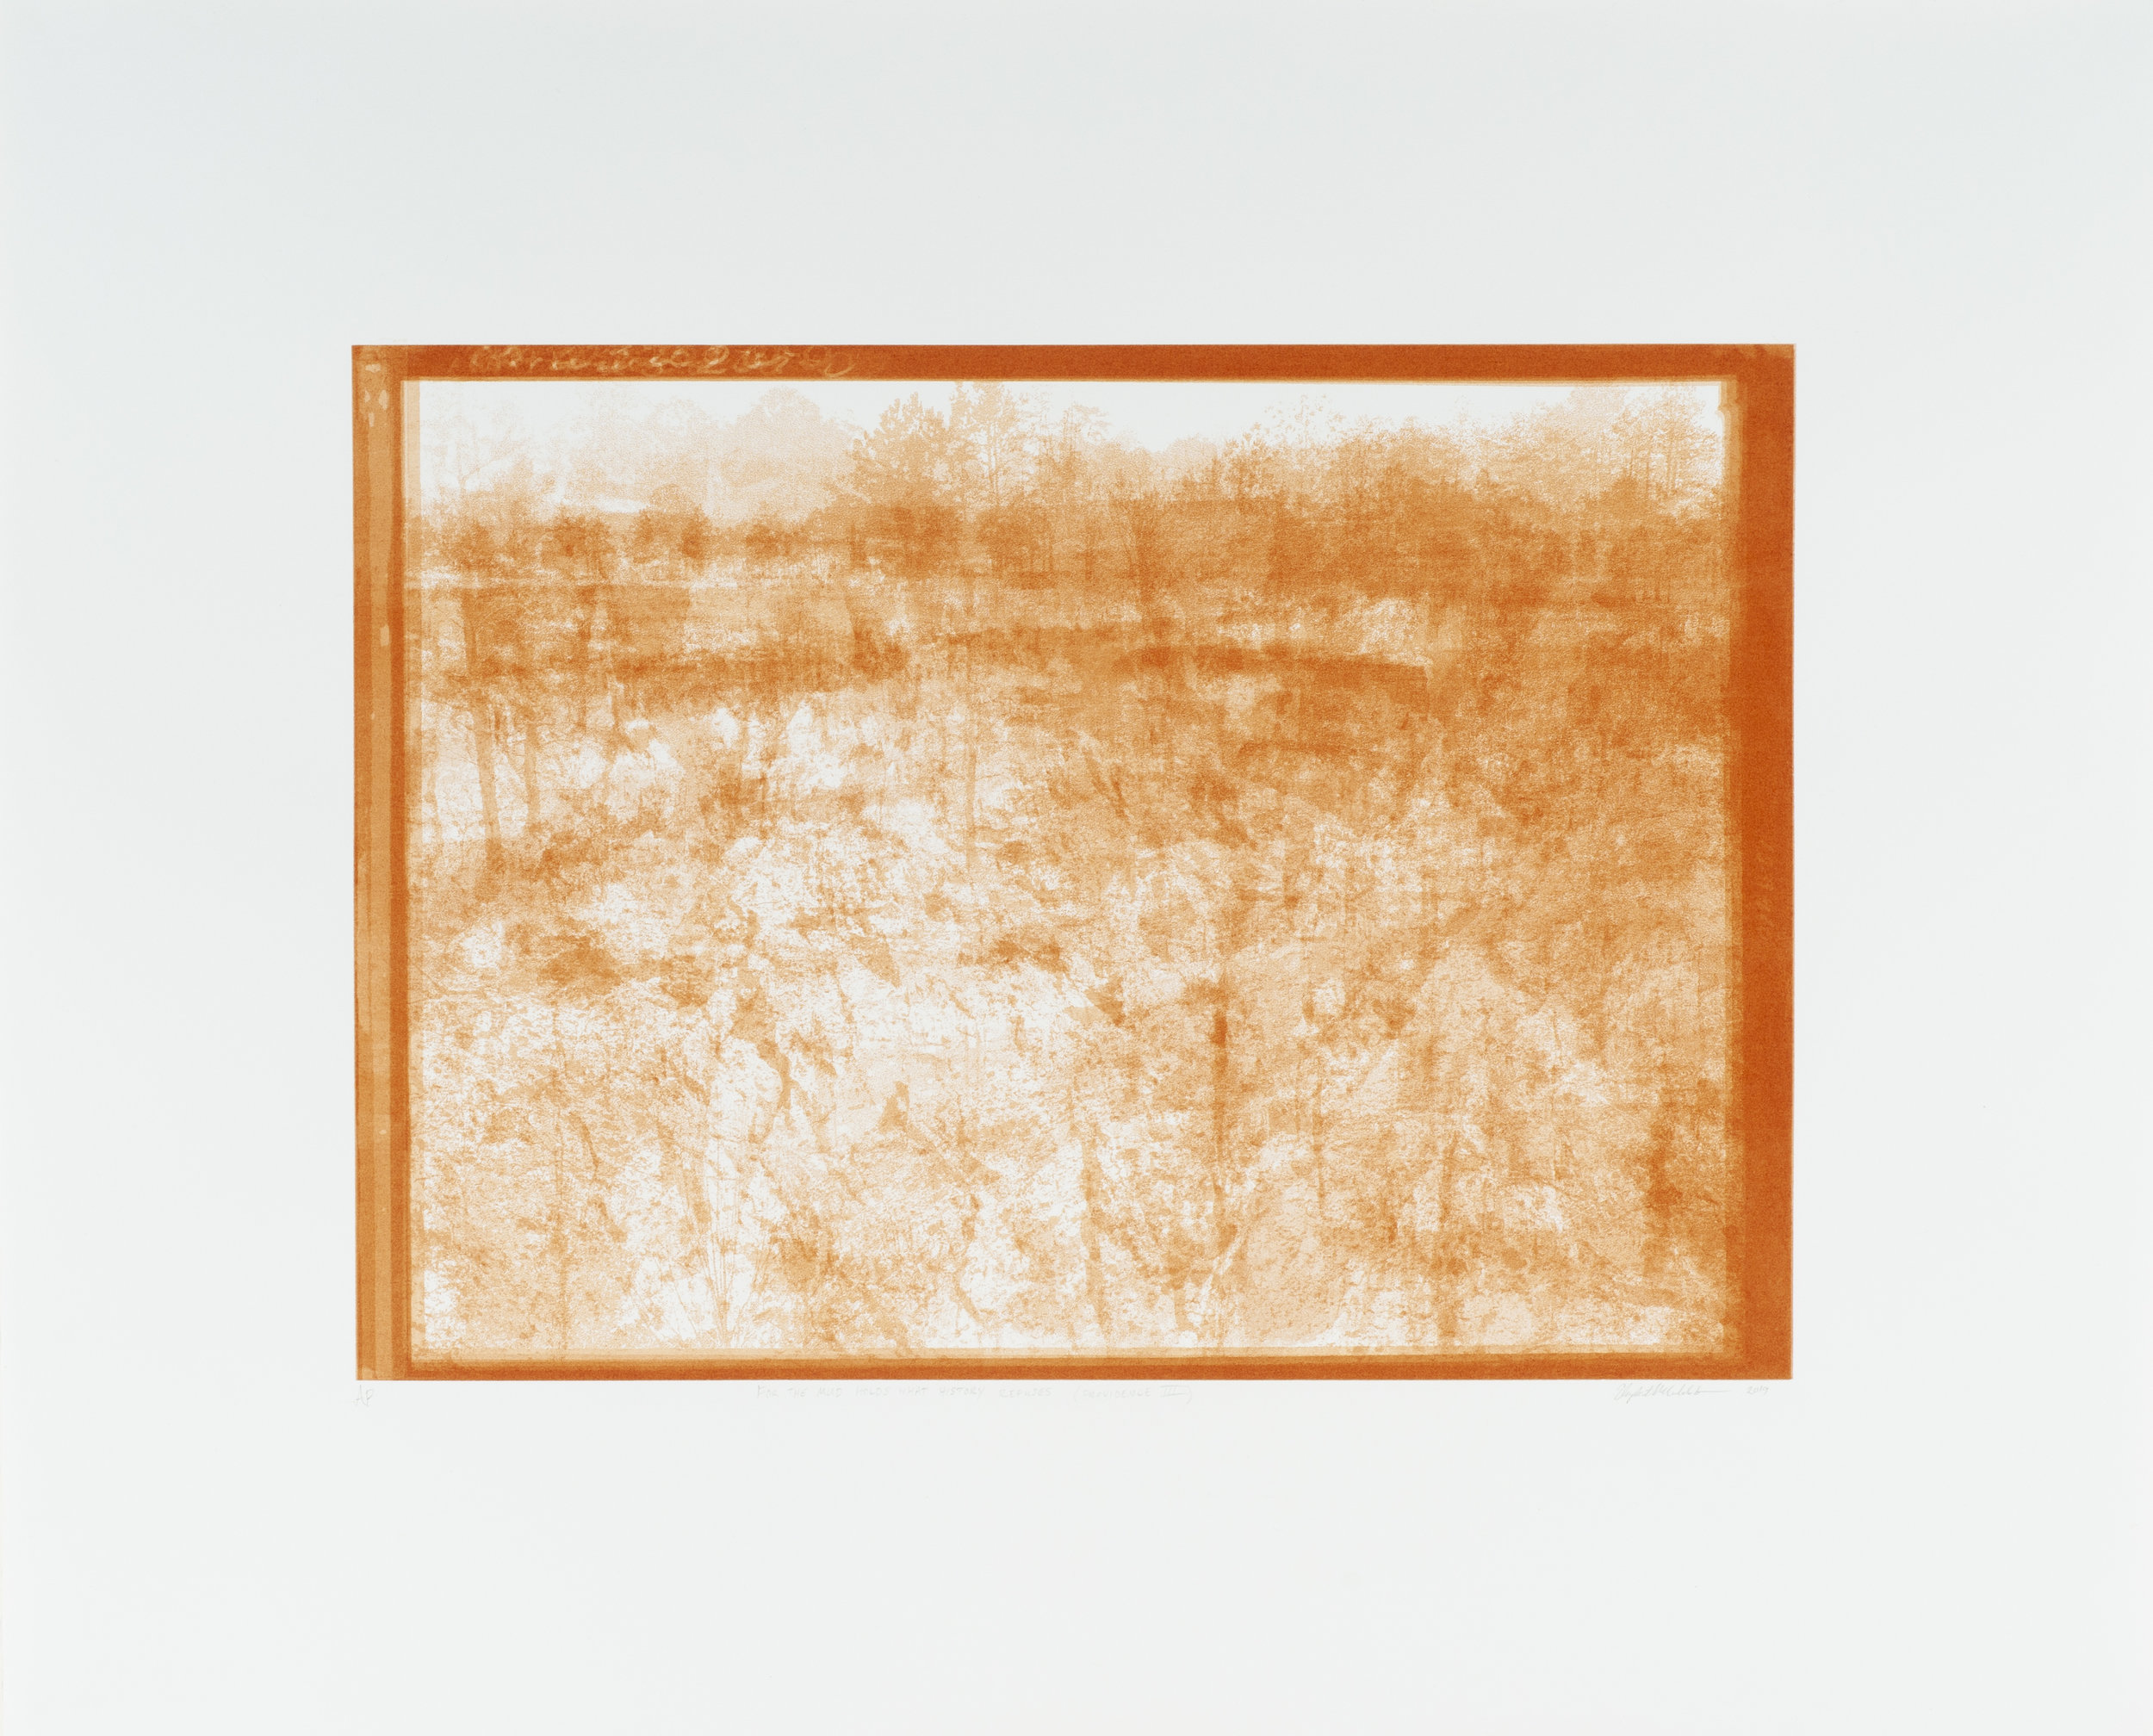 Elizabeth M. Webb   For the Mud Holds What History Refuses (Providence III)  from the series  For the Mud Holds What History Refuses (Providence in Four Parts),  2019 Red clay soil print on cotton paper, 1937 WPA erosion file on Stewart County, Georgia (photographs by Arthur Rothstein) Sheet: 30 1/4 x 37 inches Printed by Alexander Squier and the artist; published by the artist Edition: 8 + 3APs Courtesy of the artist